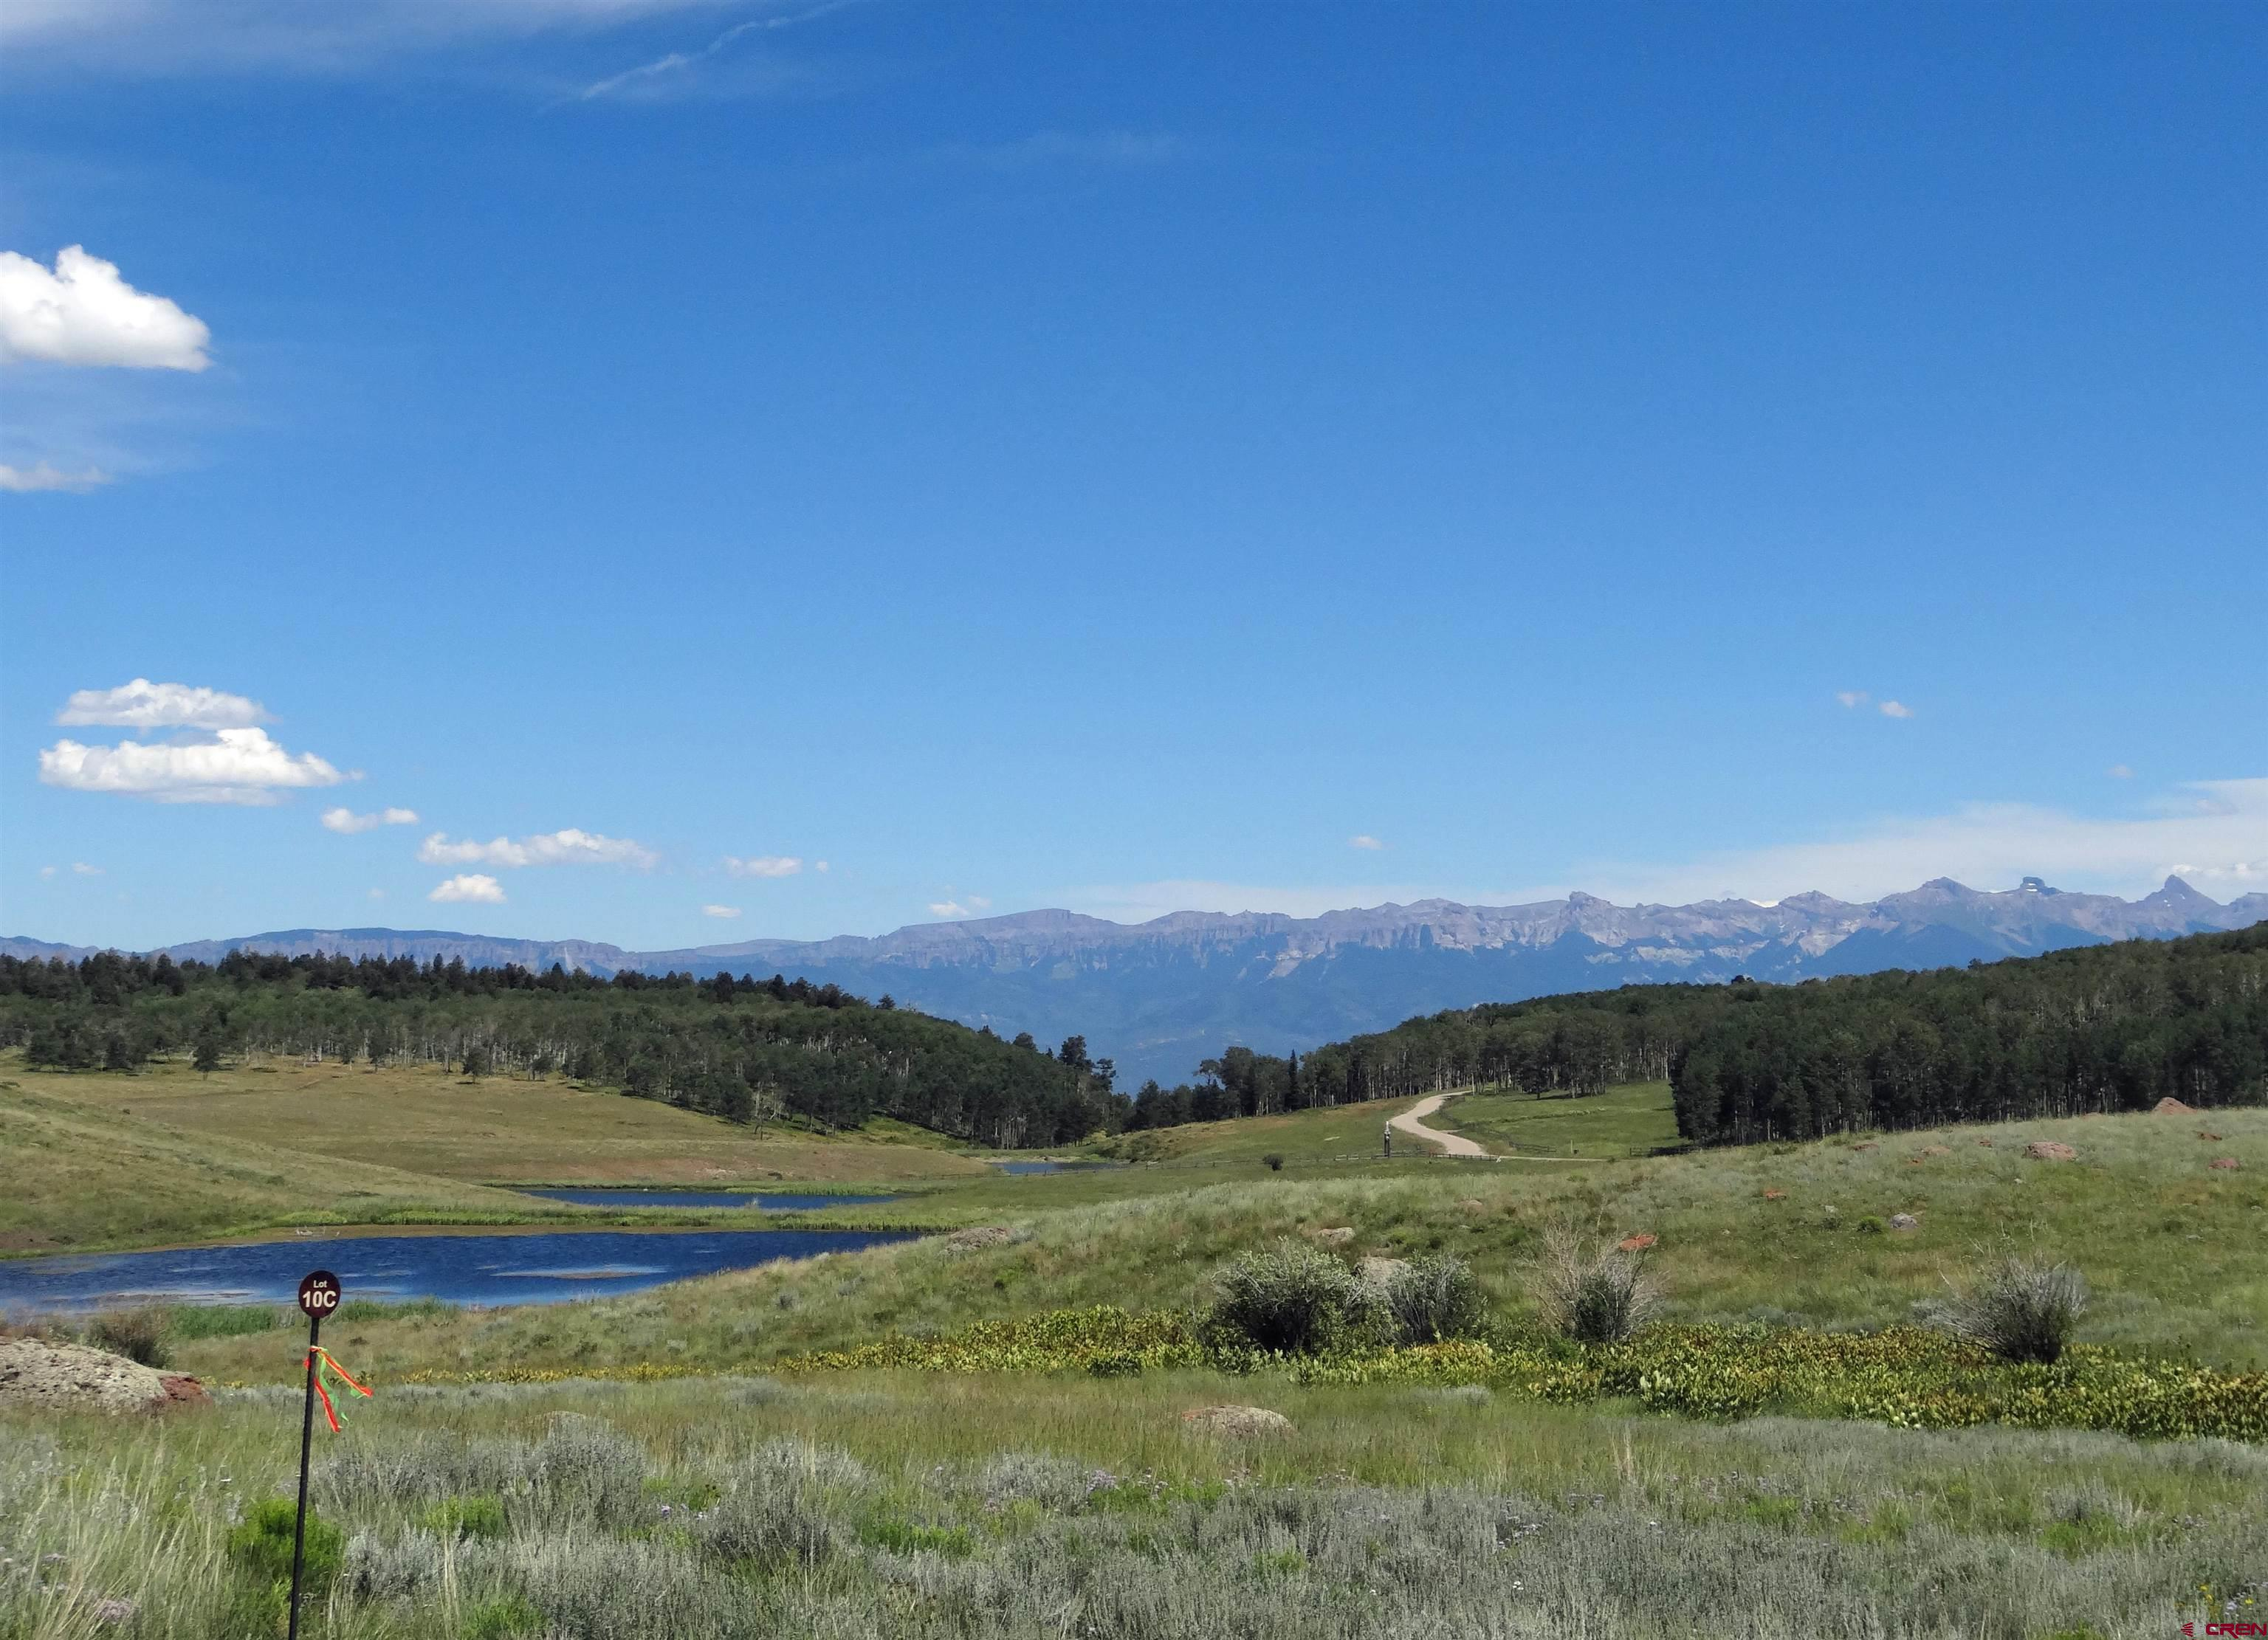 The only developer lot remaining at Spruce Mountain with a pond on site.  Build your dream home right above the water to create a Southwestern Colorado Mesa setting like no other.  A future short driveway will lead to an open building site with Cimarron Mountain range views. Stock your pond with fish and cast your day away! Private gated community within San Juan Ranch. This is a great opportunity to own a picturesque large acreage property that is just 45 minutes from Telluride and 30 minutes to Ridgway. Spruce Mountain Ranch is a private gated community within San Juan Ranch.